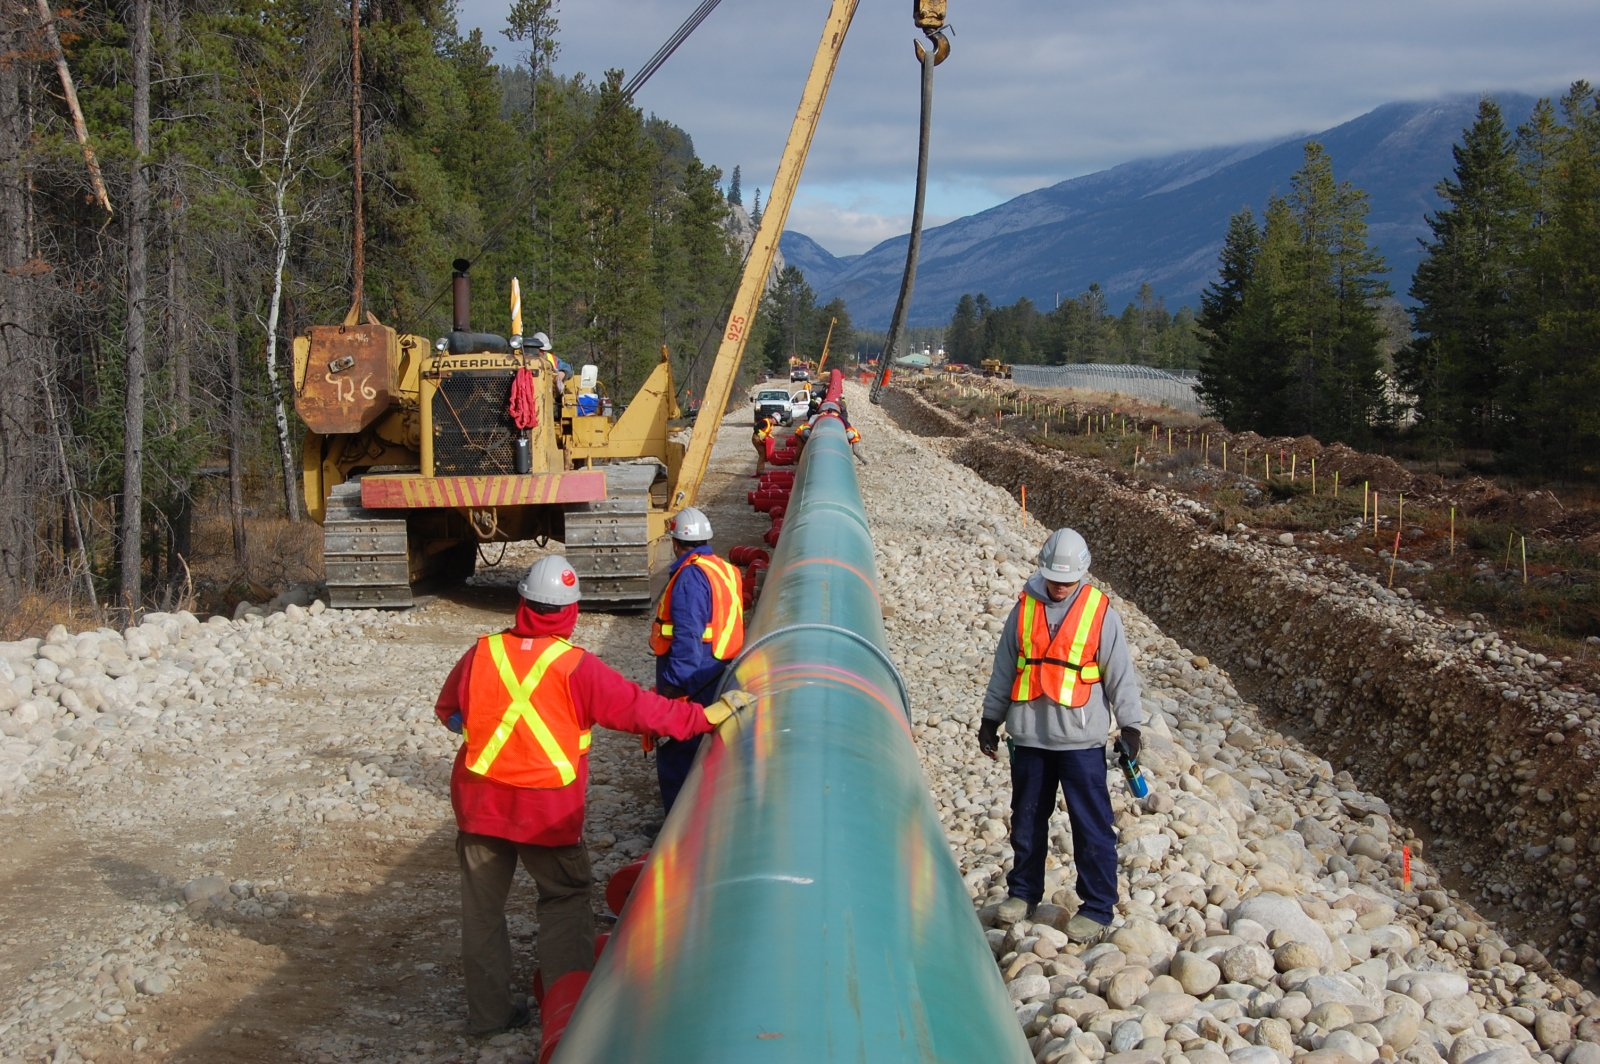 Federal Court of Appeal quashes approval of Trans Mountain pipeline expansion